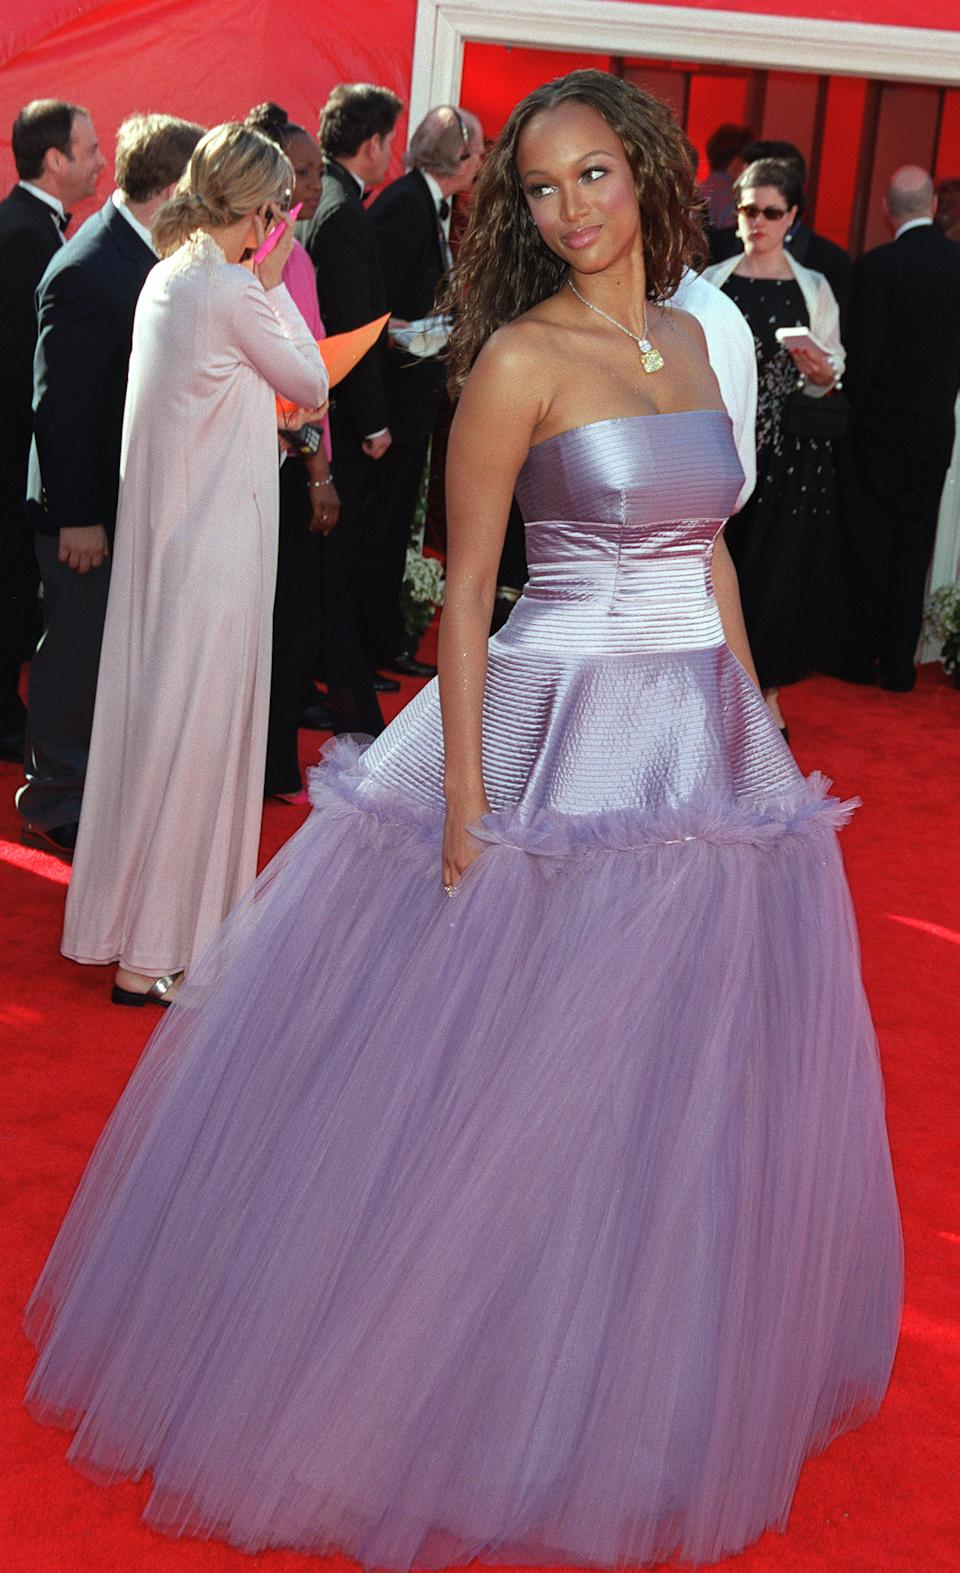 <p>Not even one of the biggest supermodels of all time could pull off the purple taffeta and crinoline gown which was panned by fans and fashion critics alike.</p>